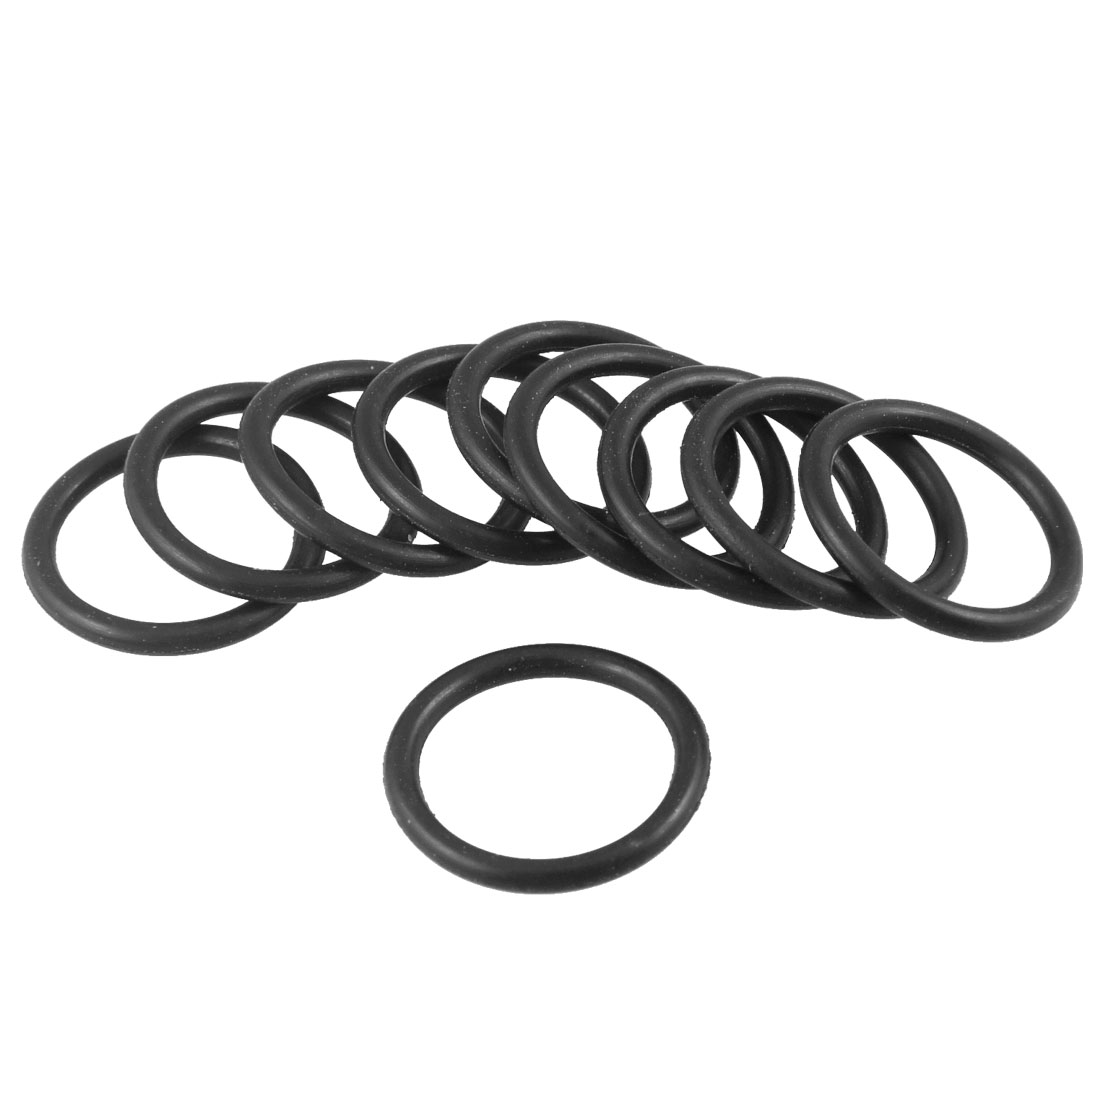 18mm-x-2mm-Automobile-NBR-O-Rings-Hole-Sealing-Gaskets-Washers-10-Pcs